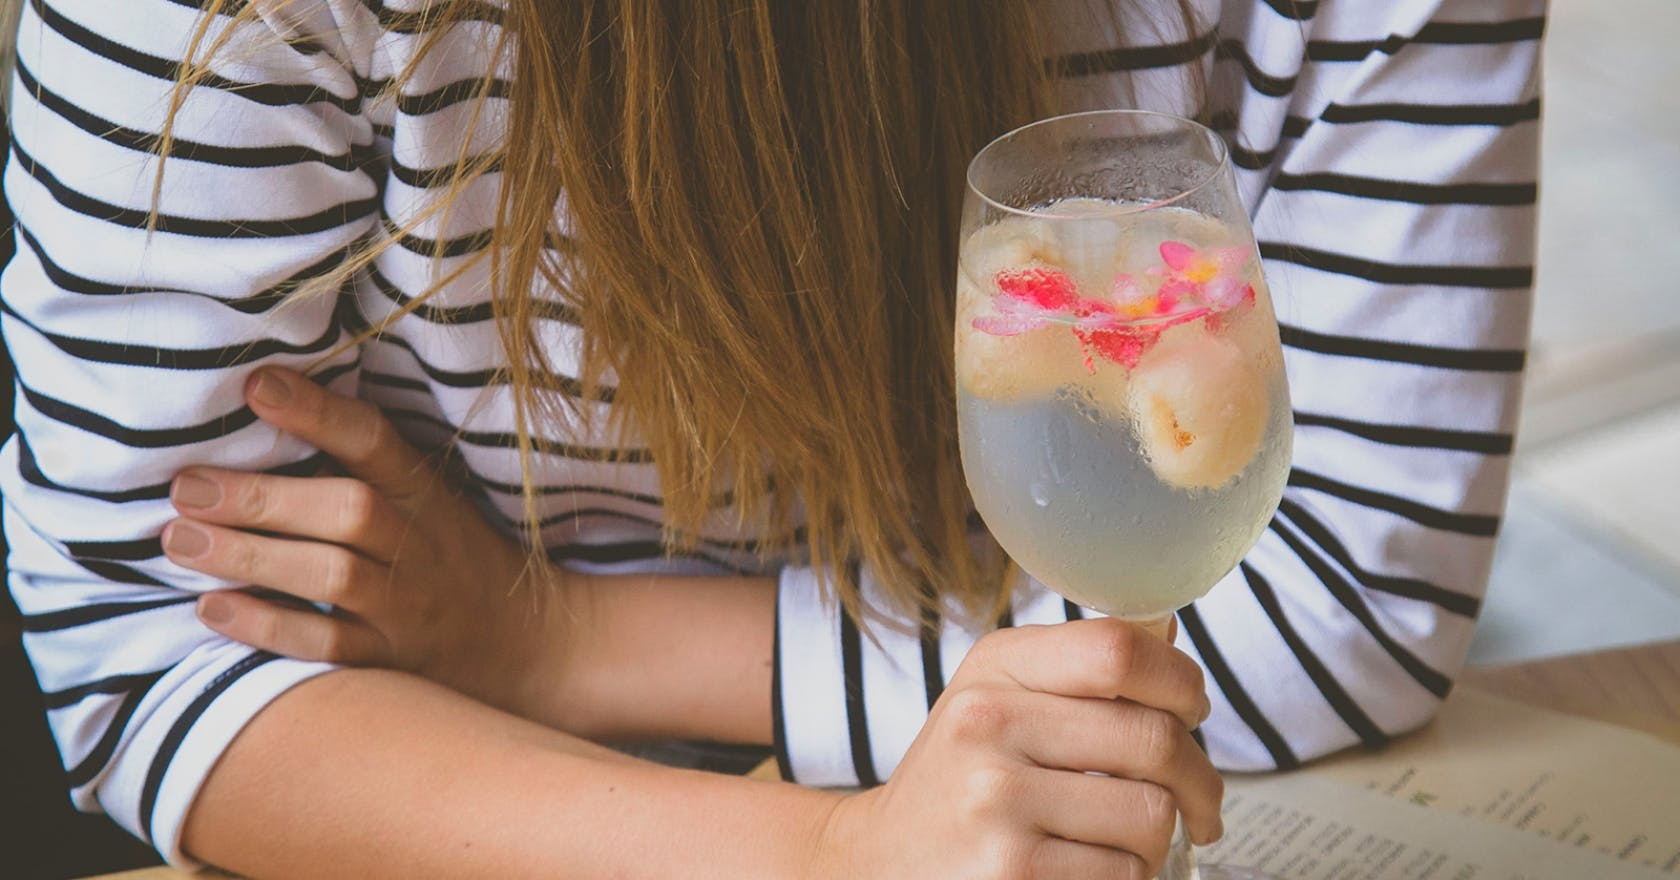 Day drinking: why drinking alcohol in the day seems to affect us more